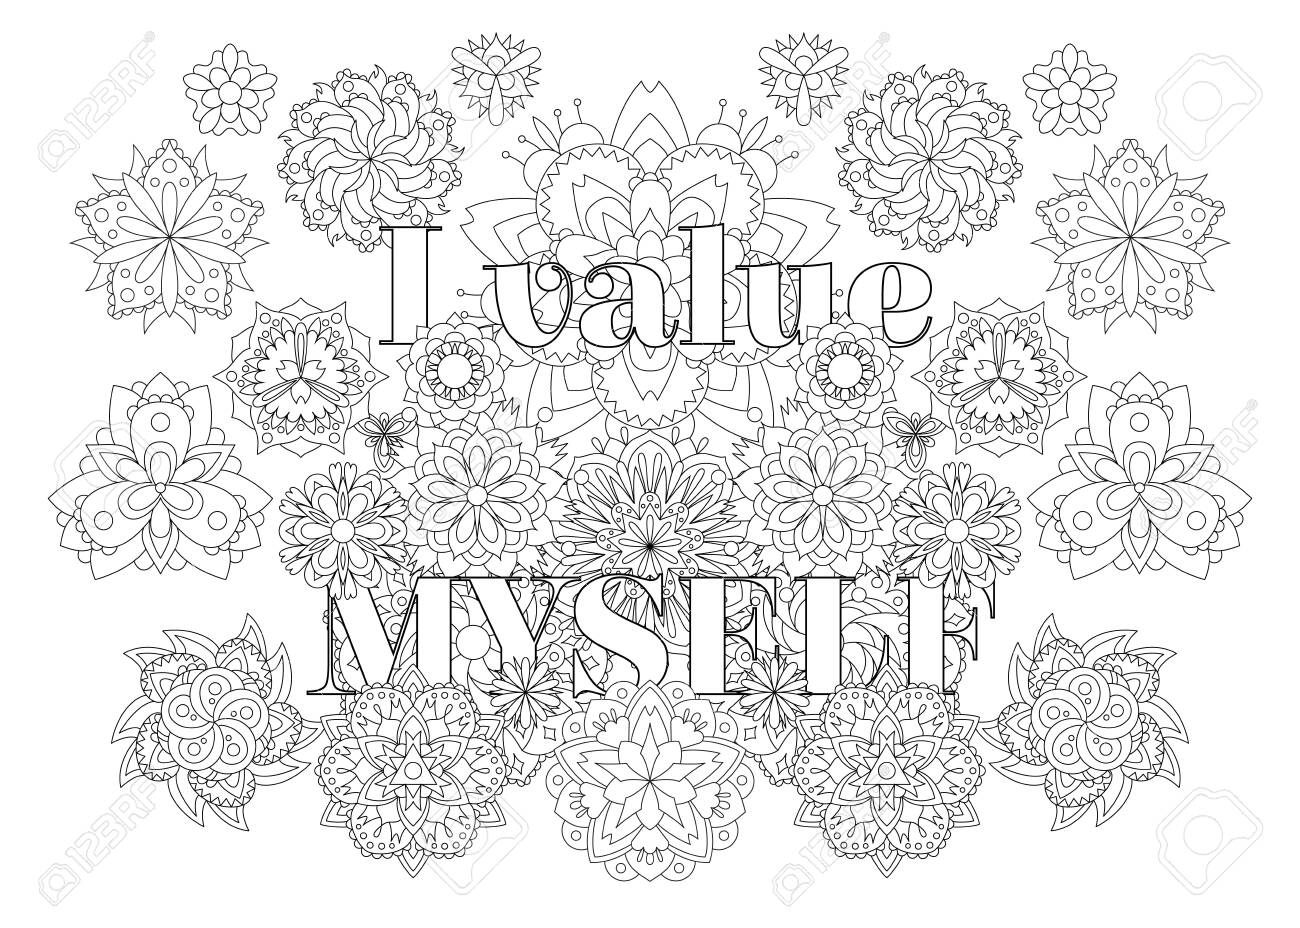 Vector for adults with inspirational bodypositive quote and mandala flowers. - 148353427